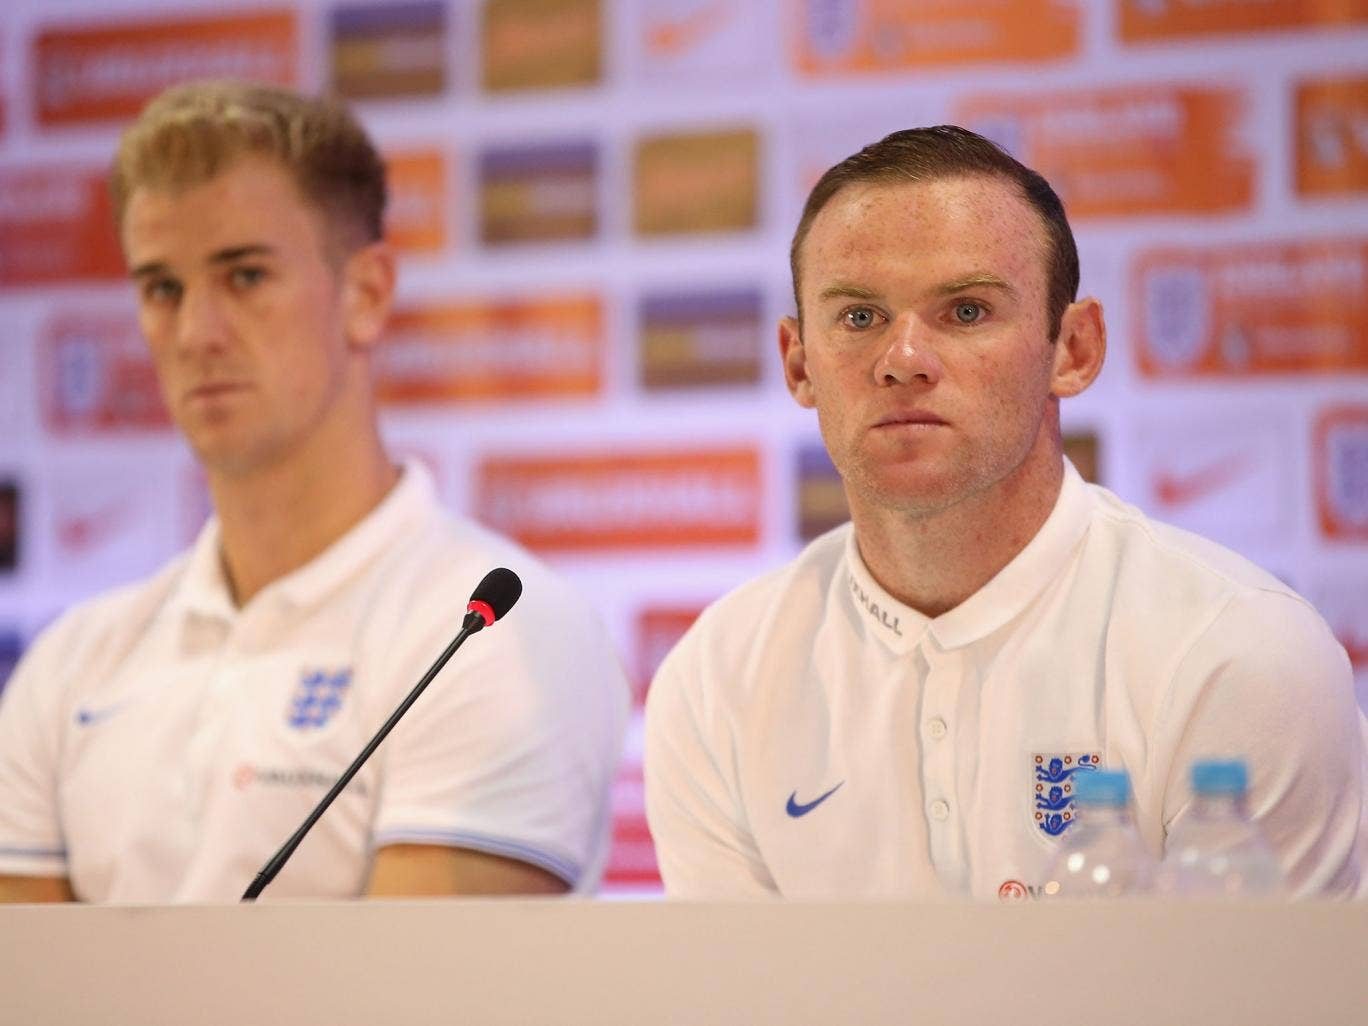 Joe Hart and Wayne Rooney face the media in a press conference after an England training session at the Urca Military Base on June 21, 2014 in Rio de Janeiro, Brazil